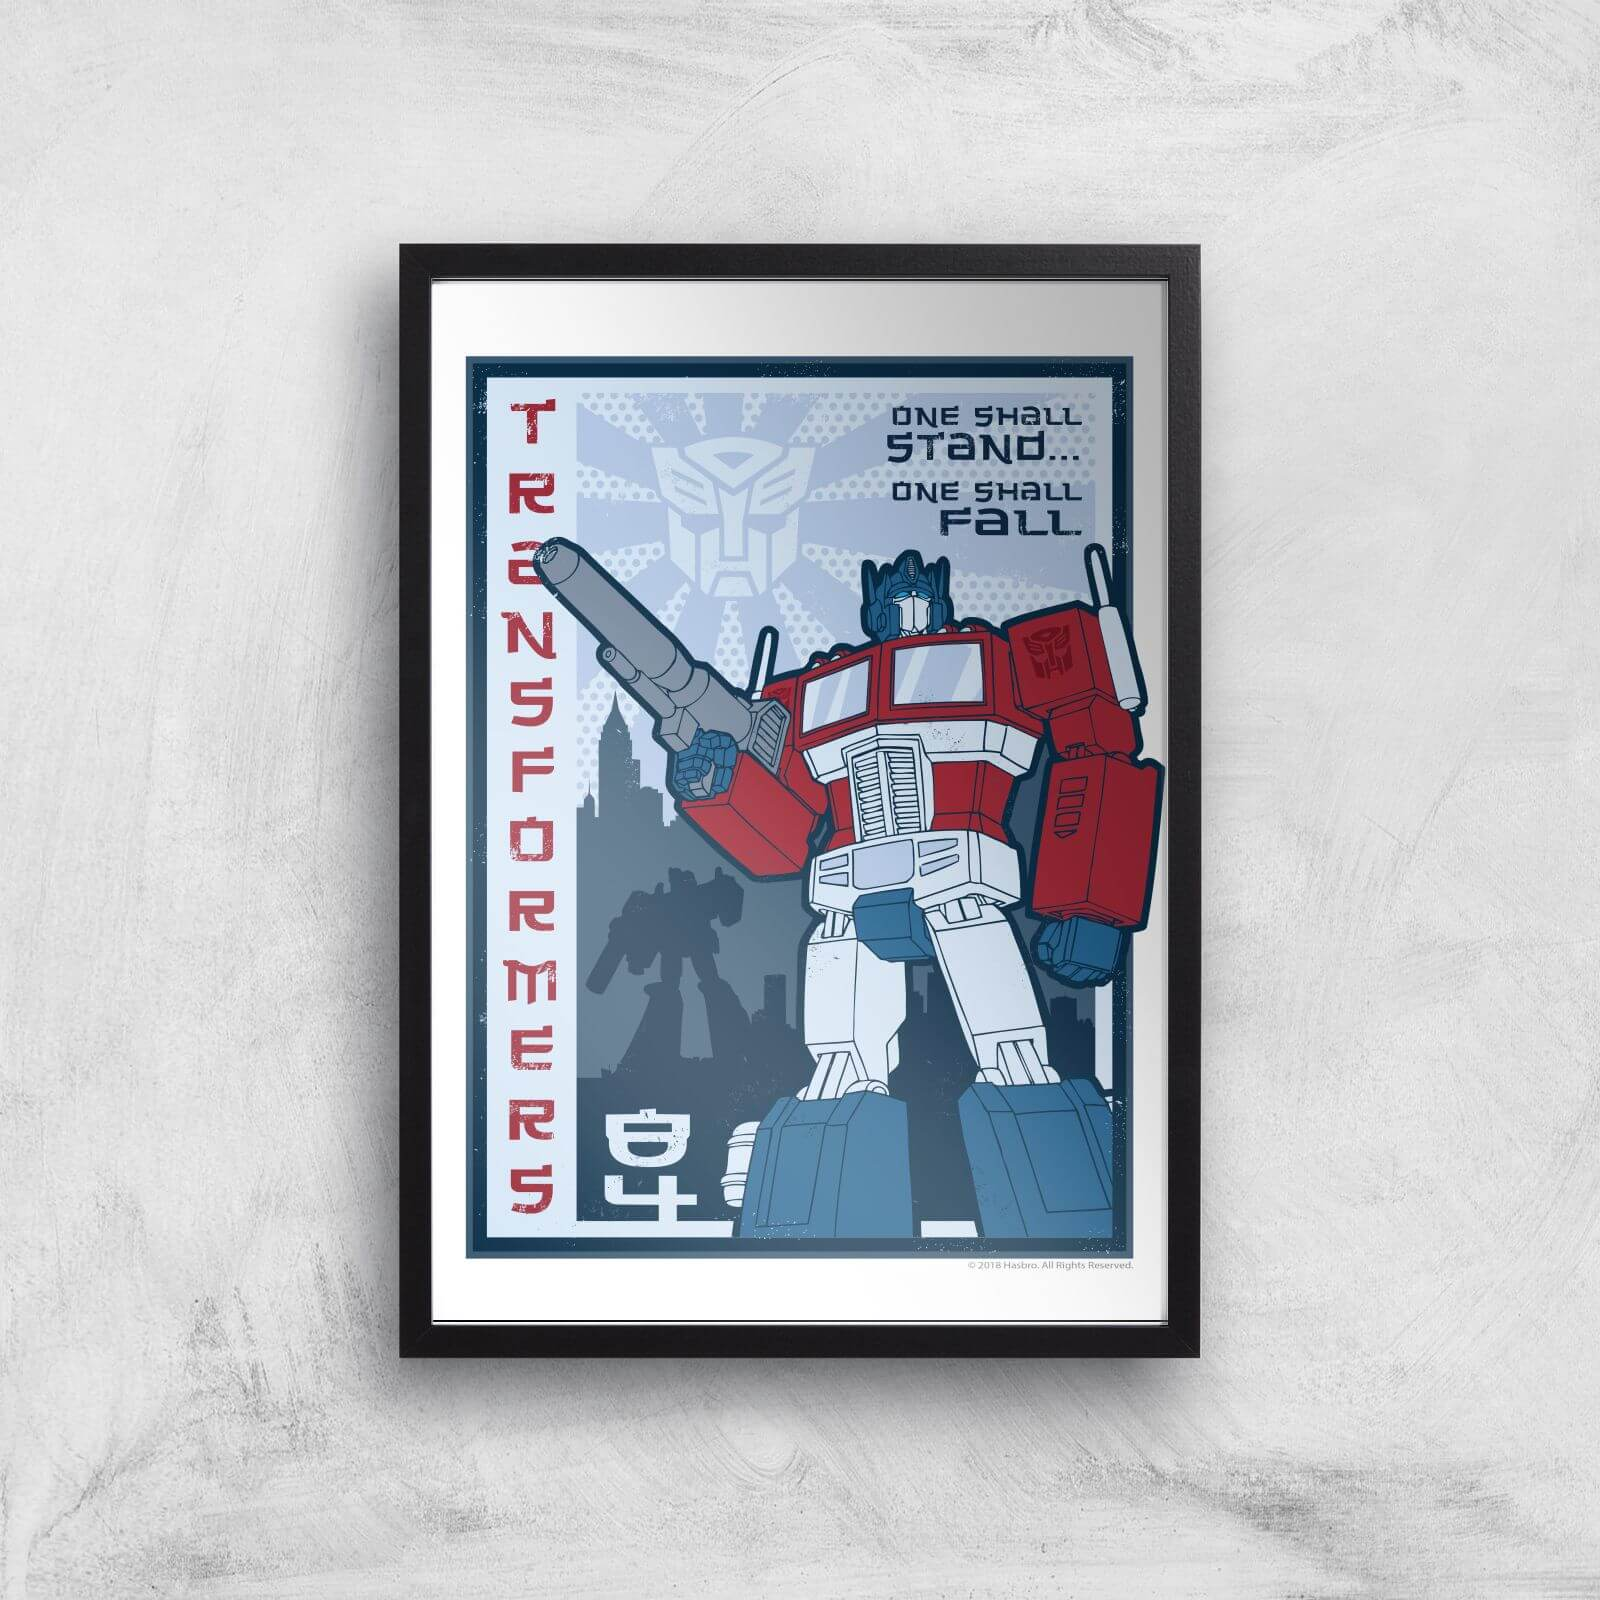 Transformers One Shall Stand Poster Art Print   A3   Black Frame